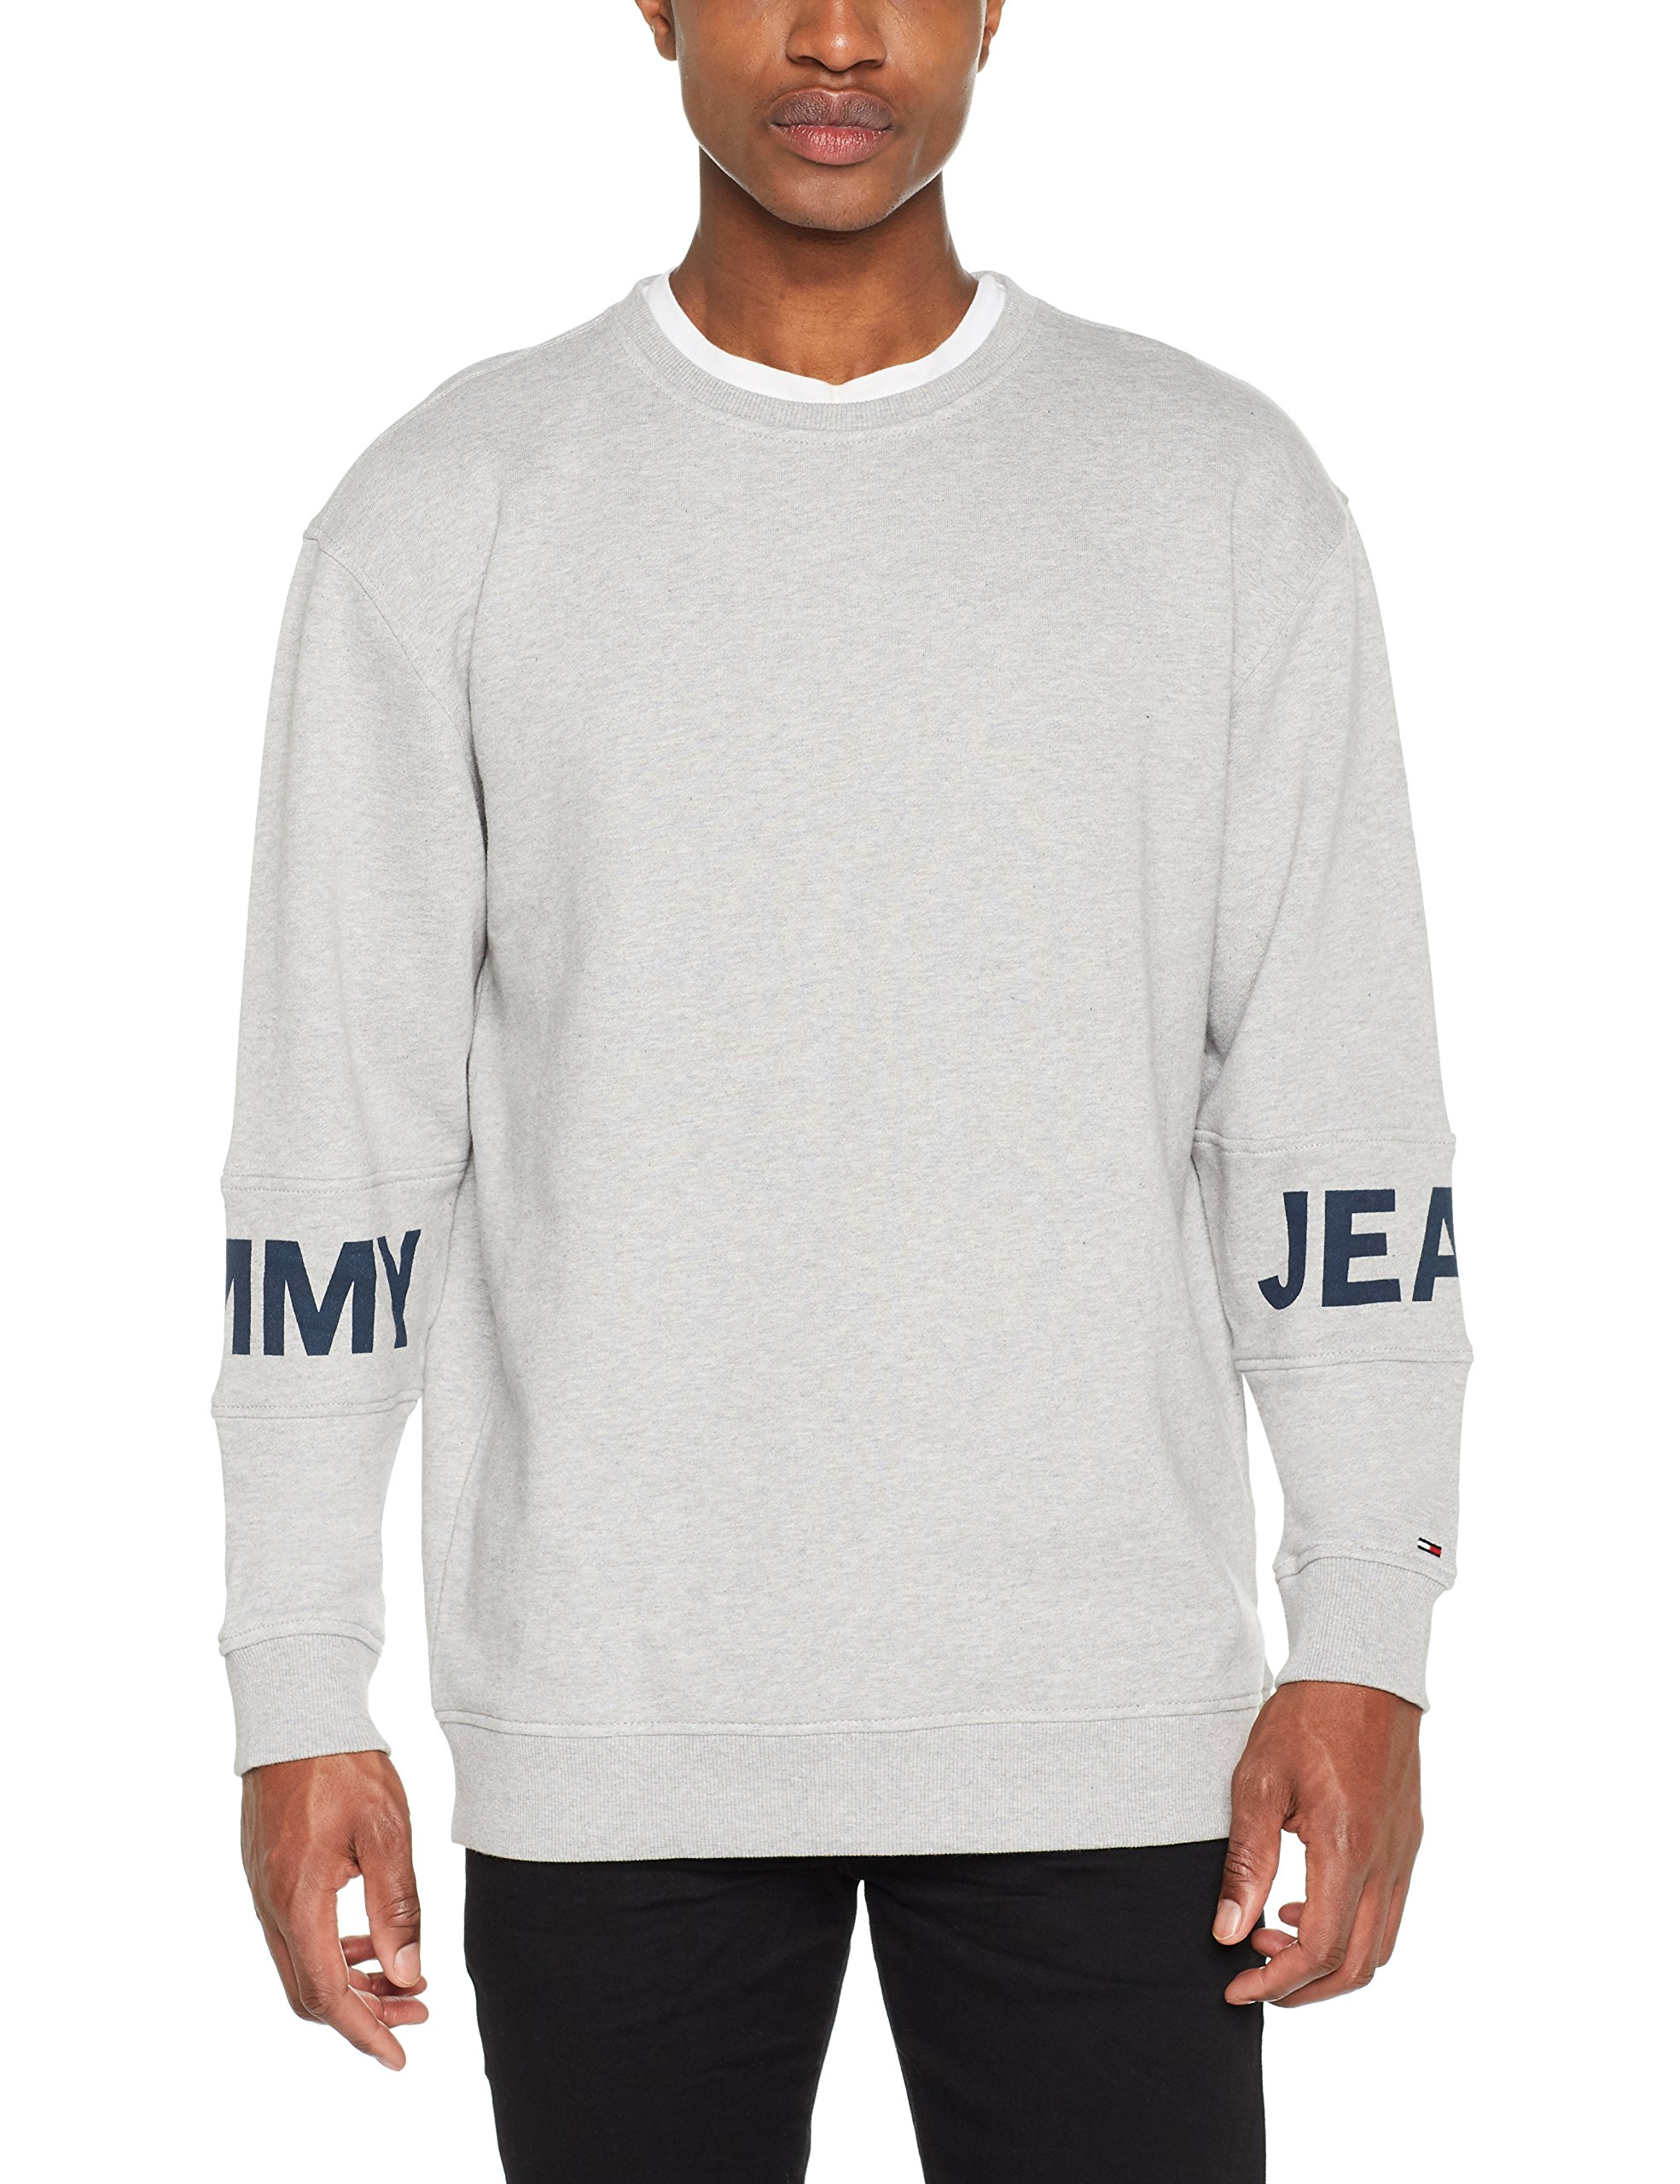 Tommy 038X Logo Banded shirt Jeans Grey Sweat Courtes Manches Grislt Htr Homme Essential Crew large kXOZiPu